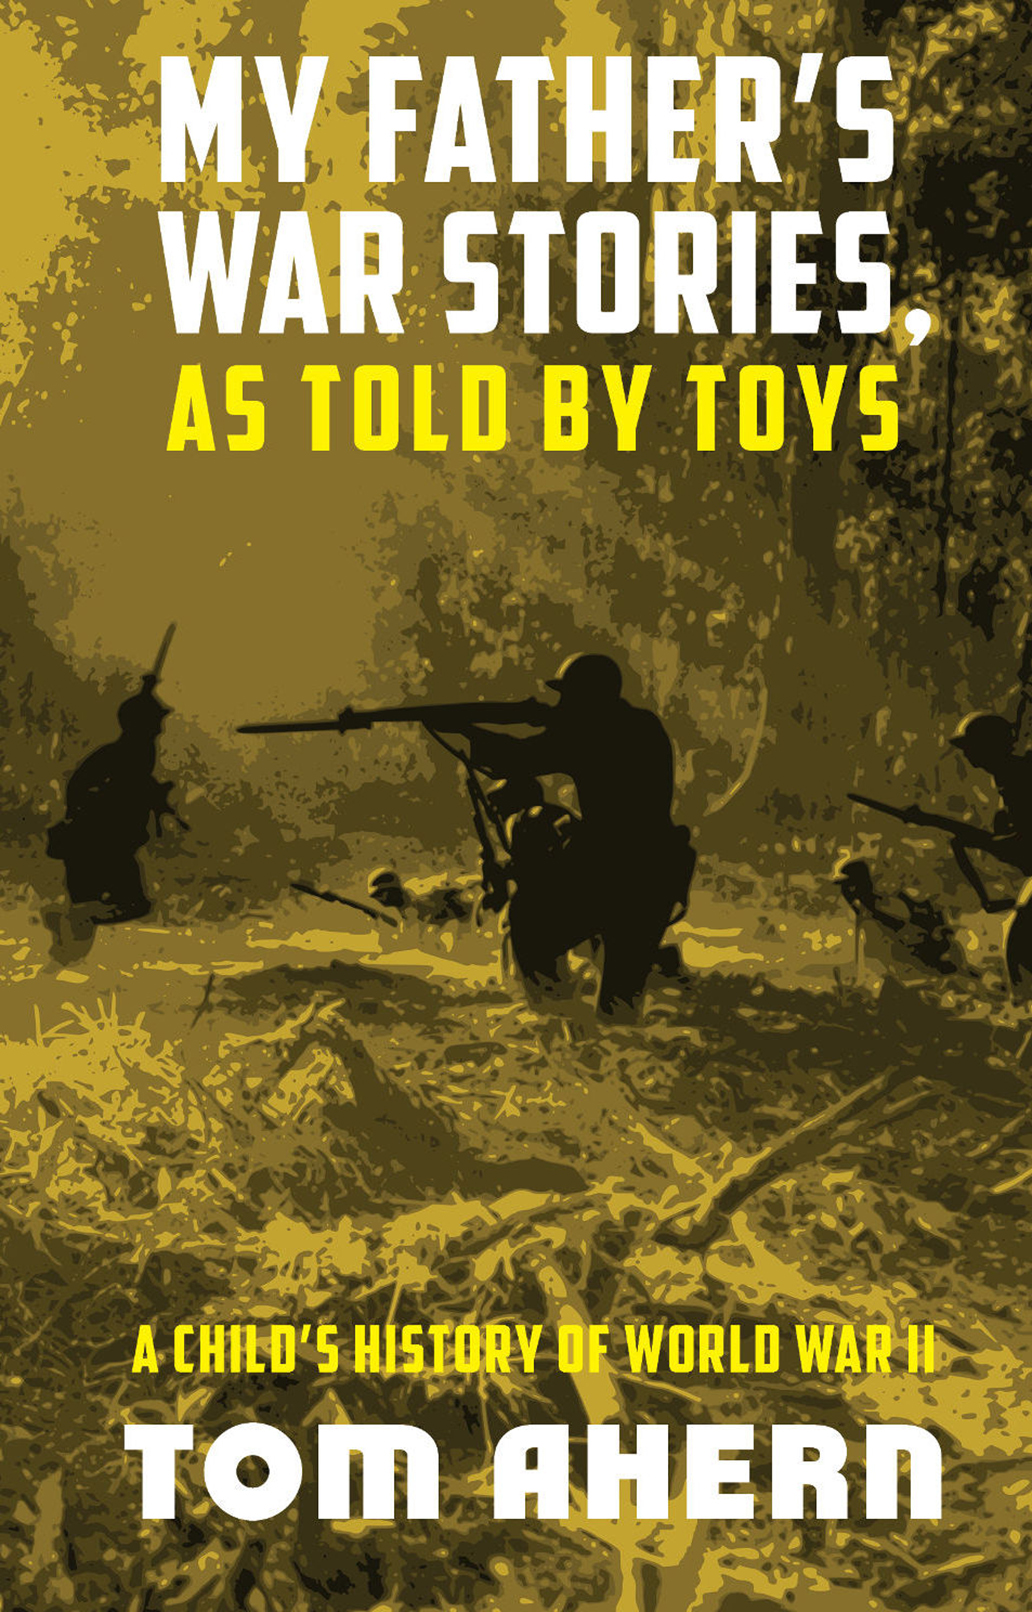 My Father's War Stories, As Told By Toys: A Child's History of World War II